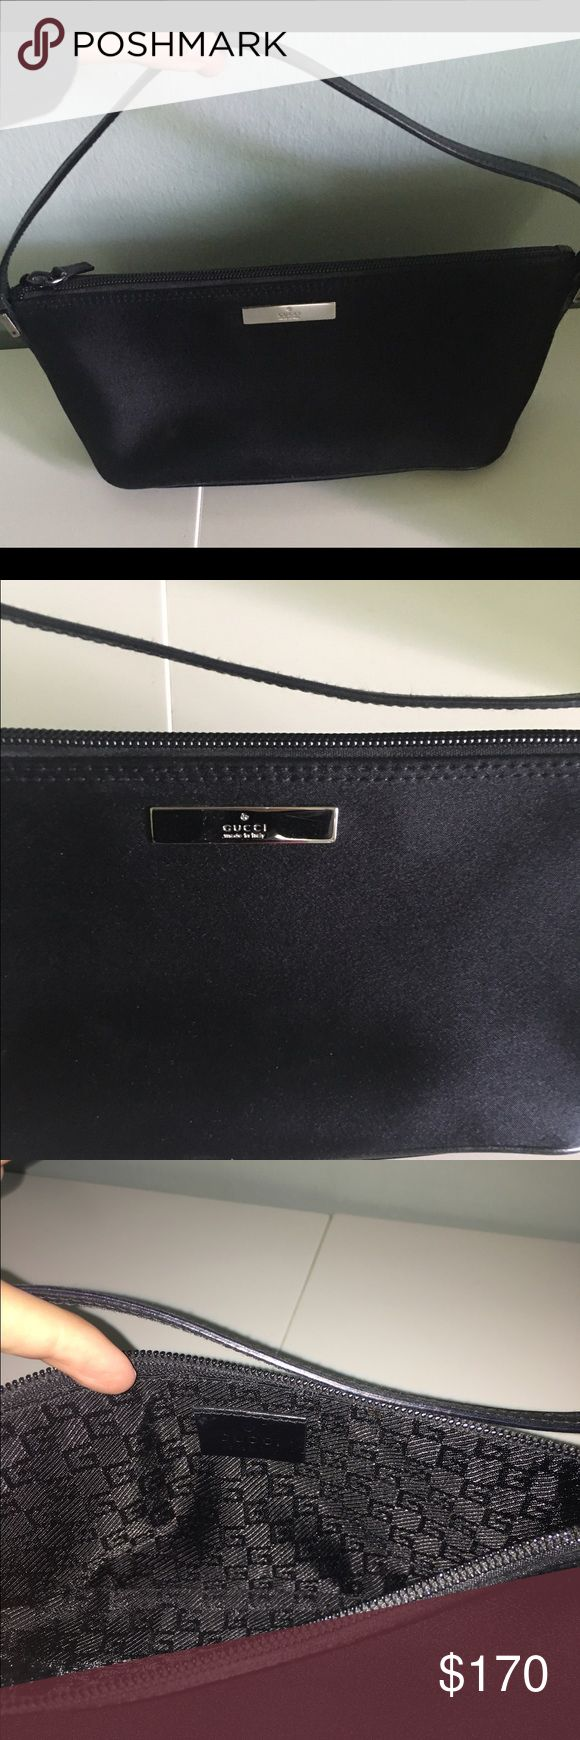 Gucci evening bag Black Gucci evening bag. Perfect condition! Gucci Bags Mini Bags